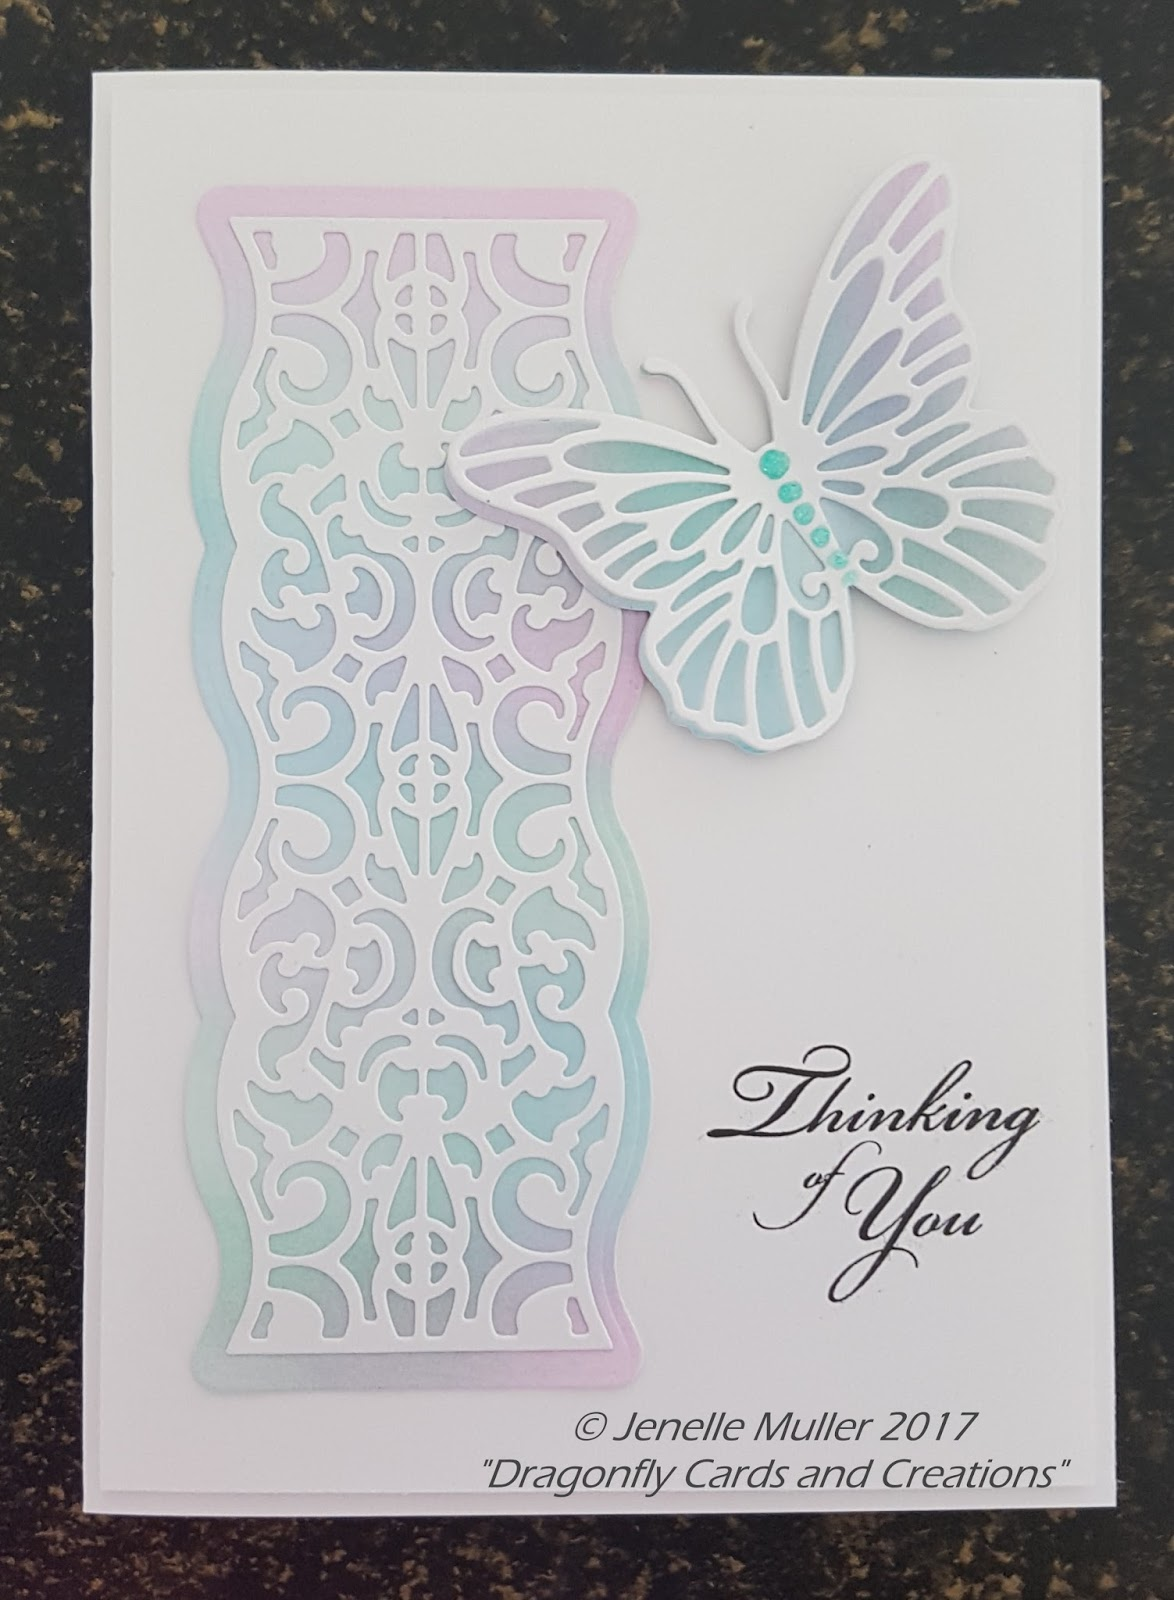 Dragonfly Cards and Creations